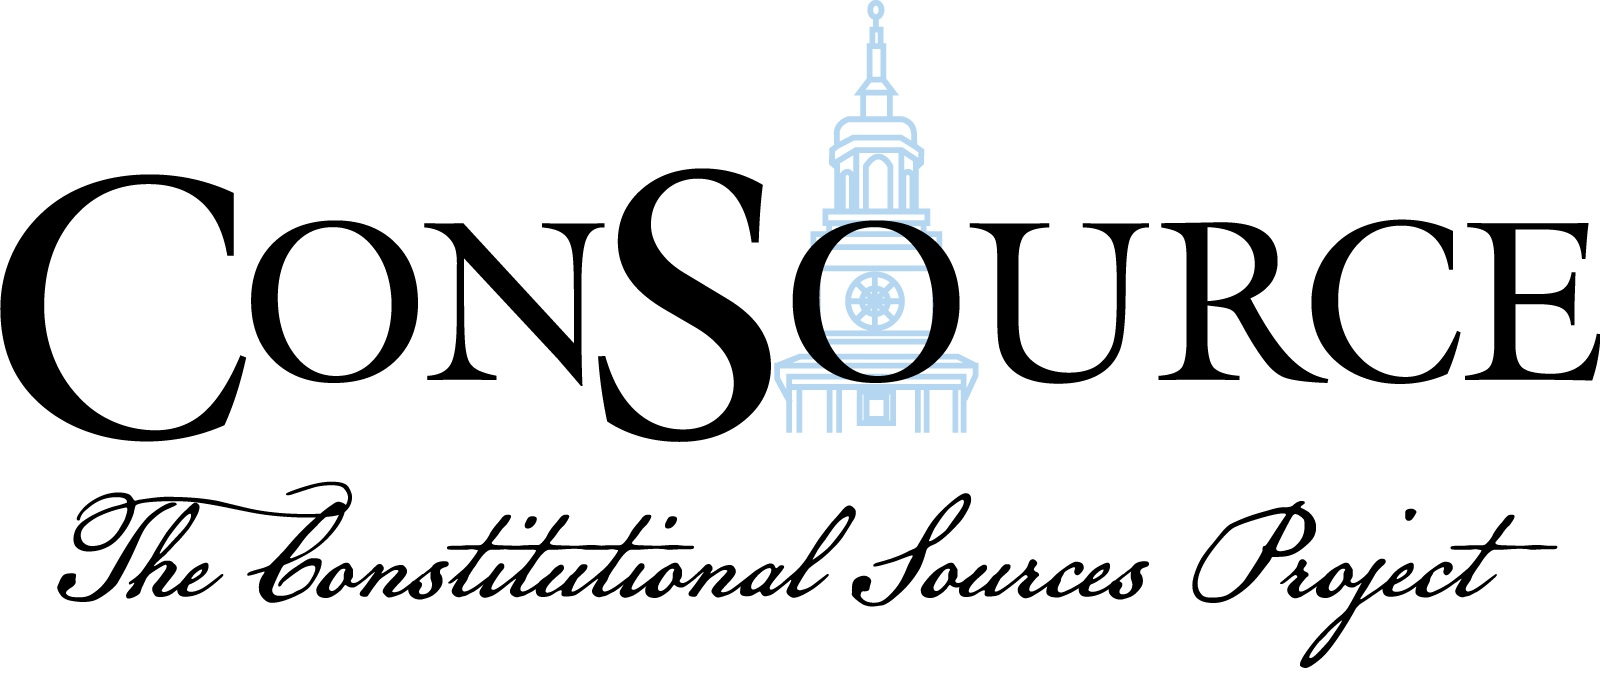 The Constitutional Sources Project - Washington, District of Columbia